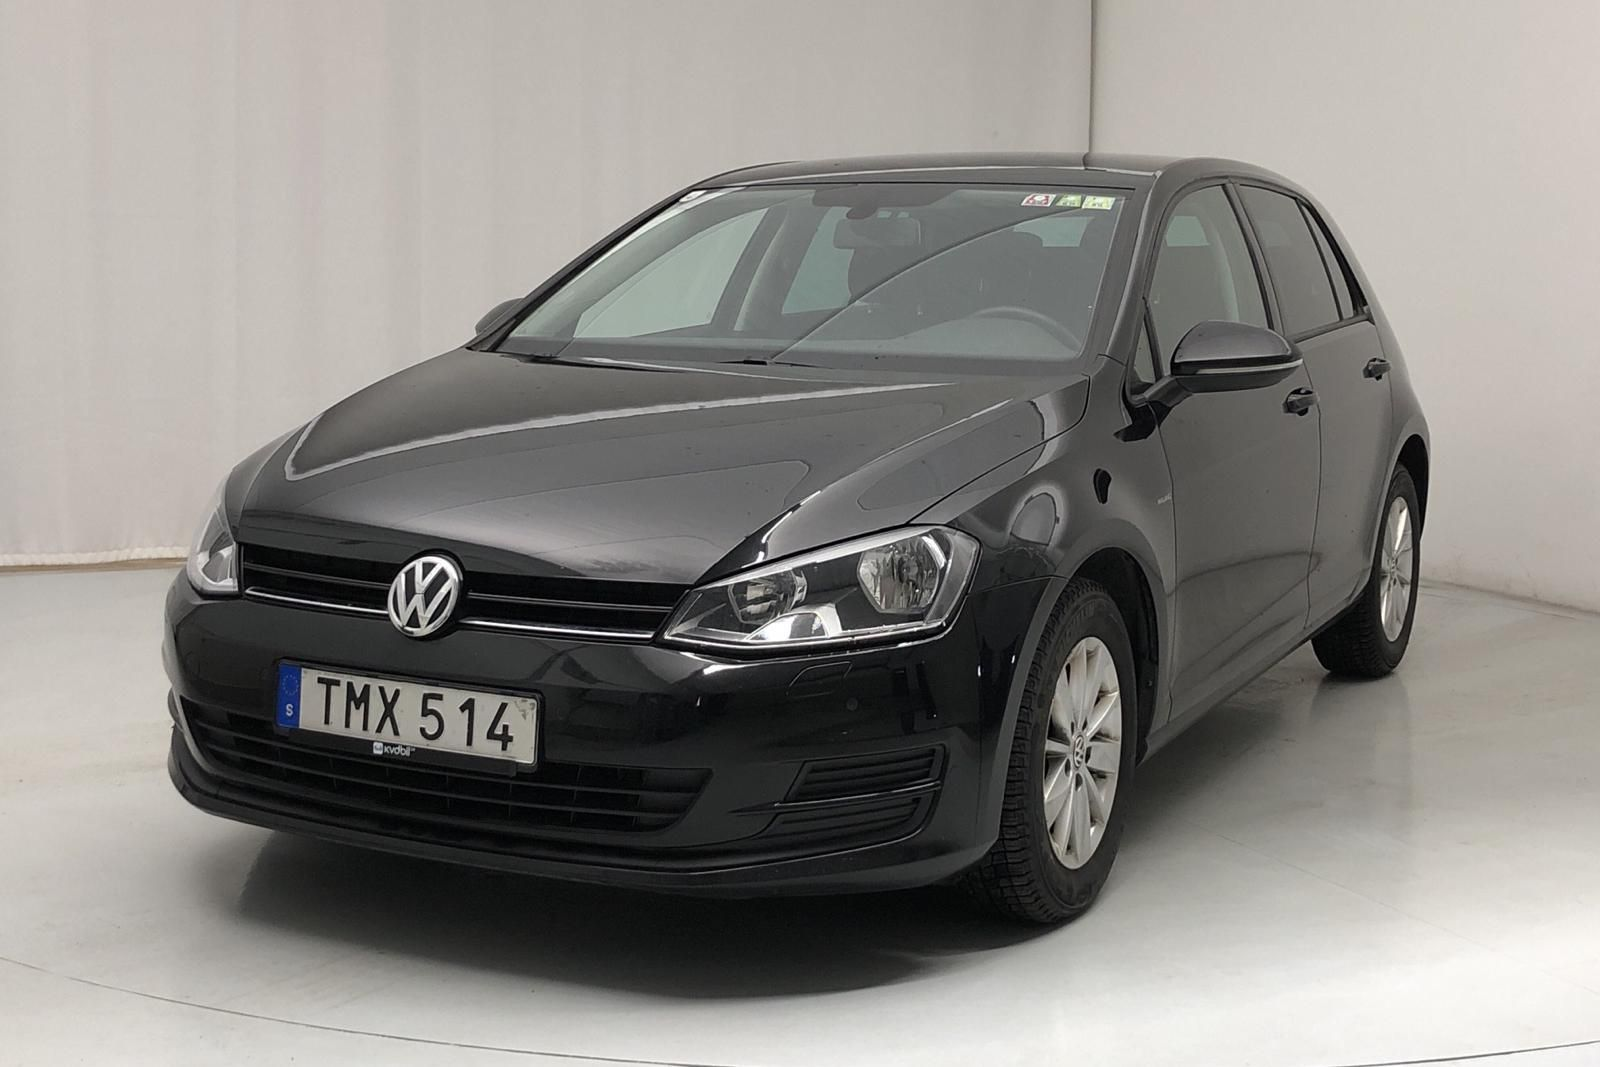 VW Golf VII 1.6 TDI BlueMotion Technologie 5dr (105hk)